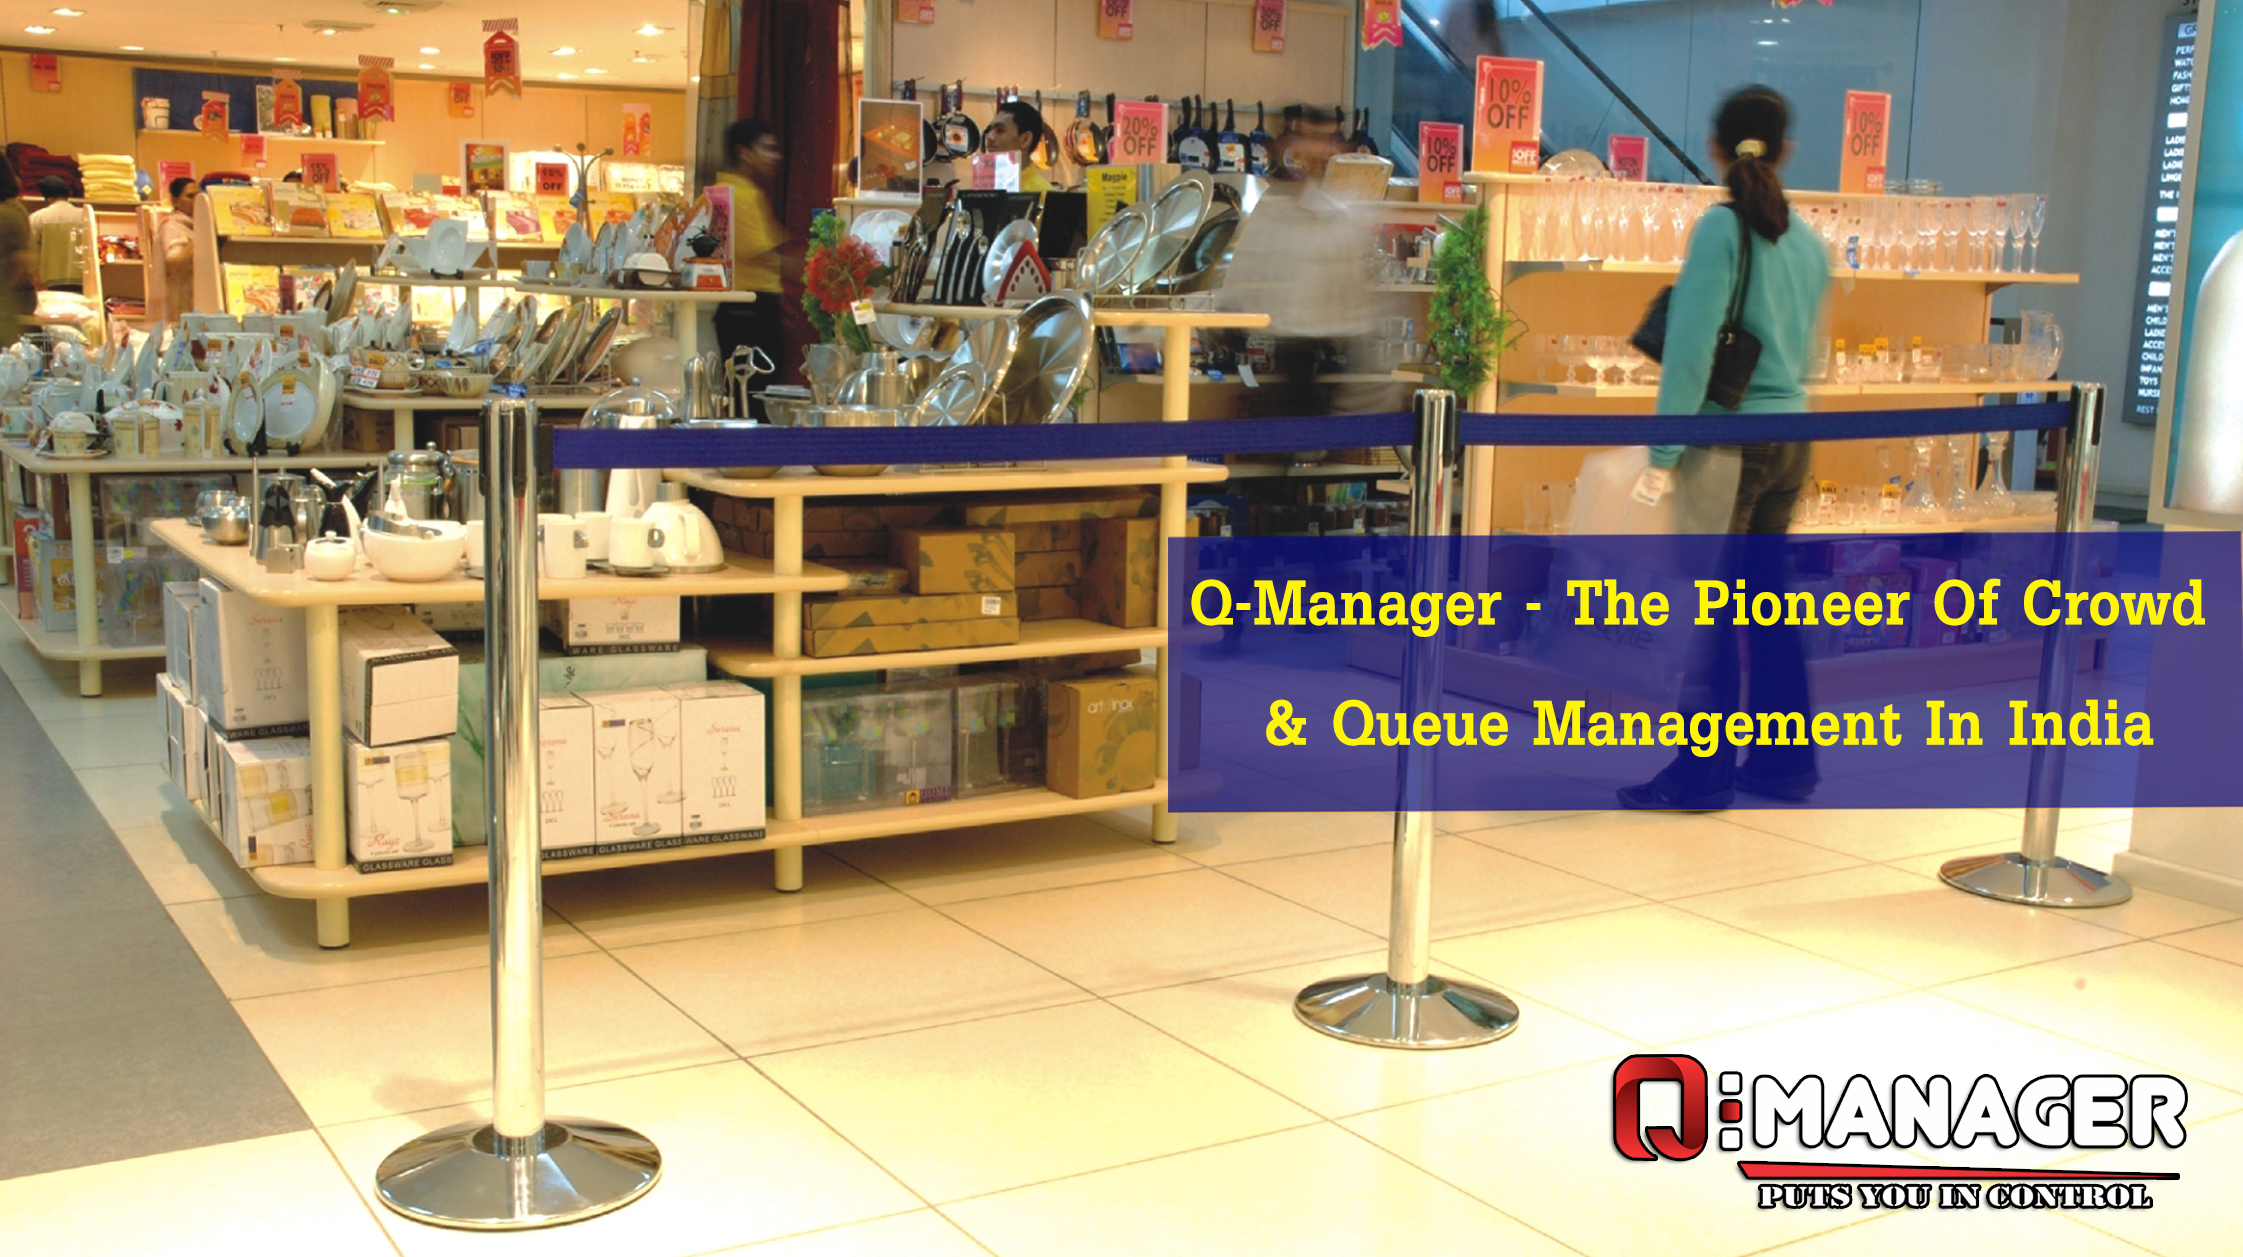 Q-Manager - The Pioneer Of Crowd & Queue Management In India